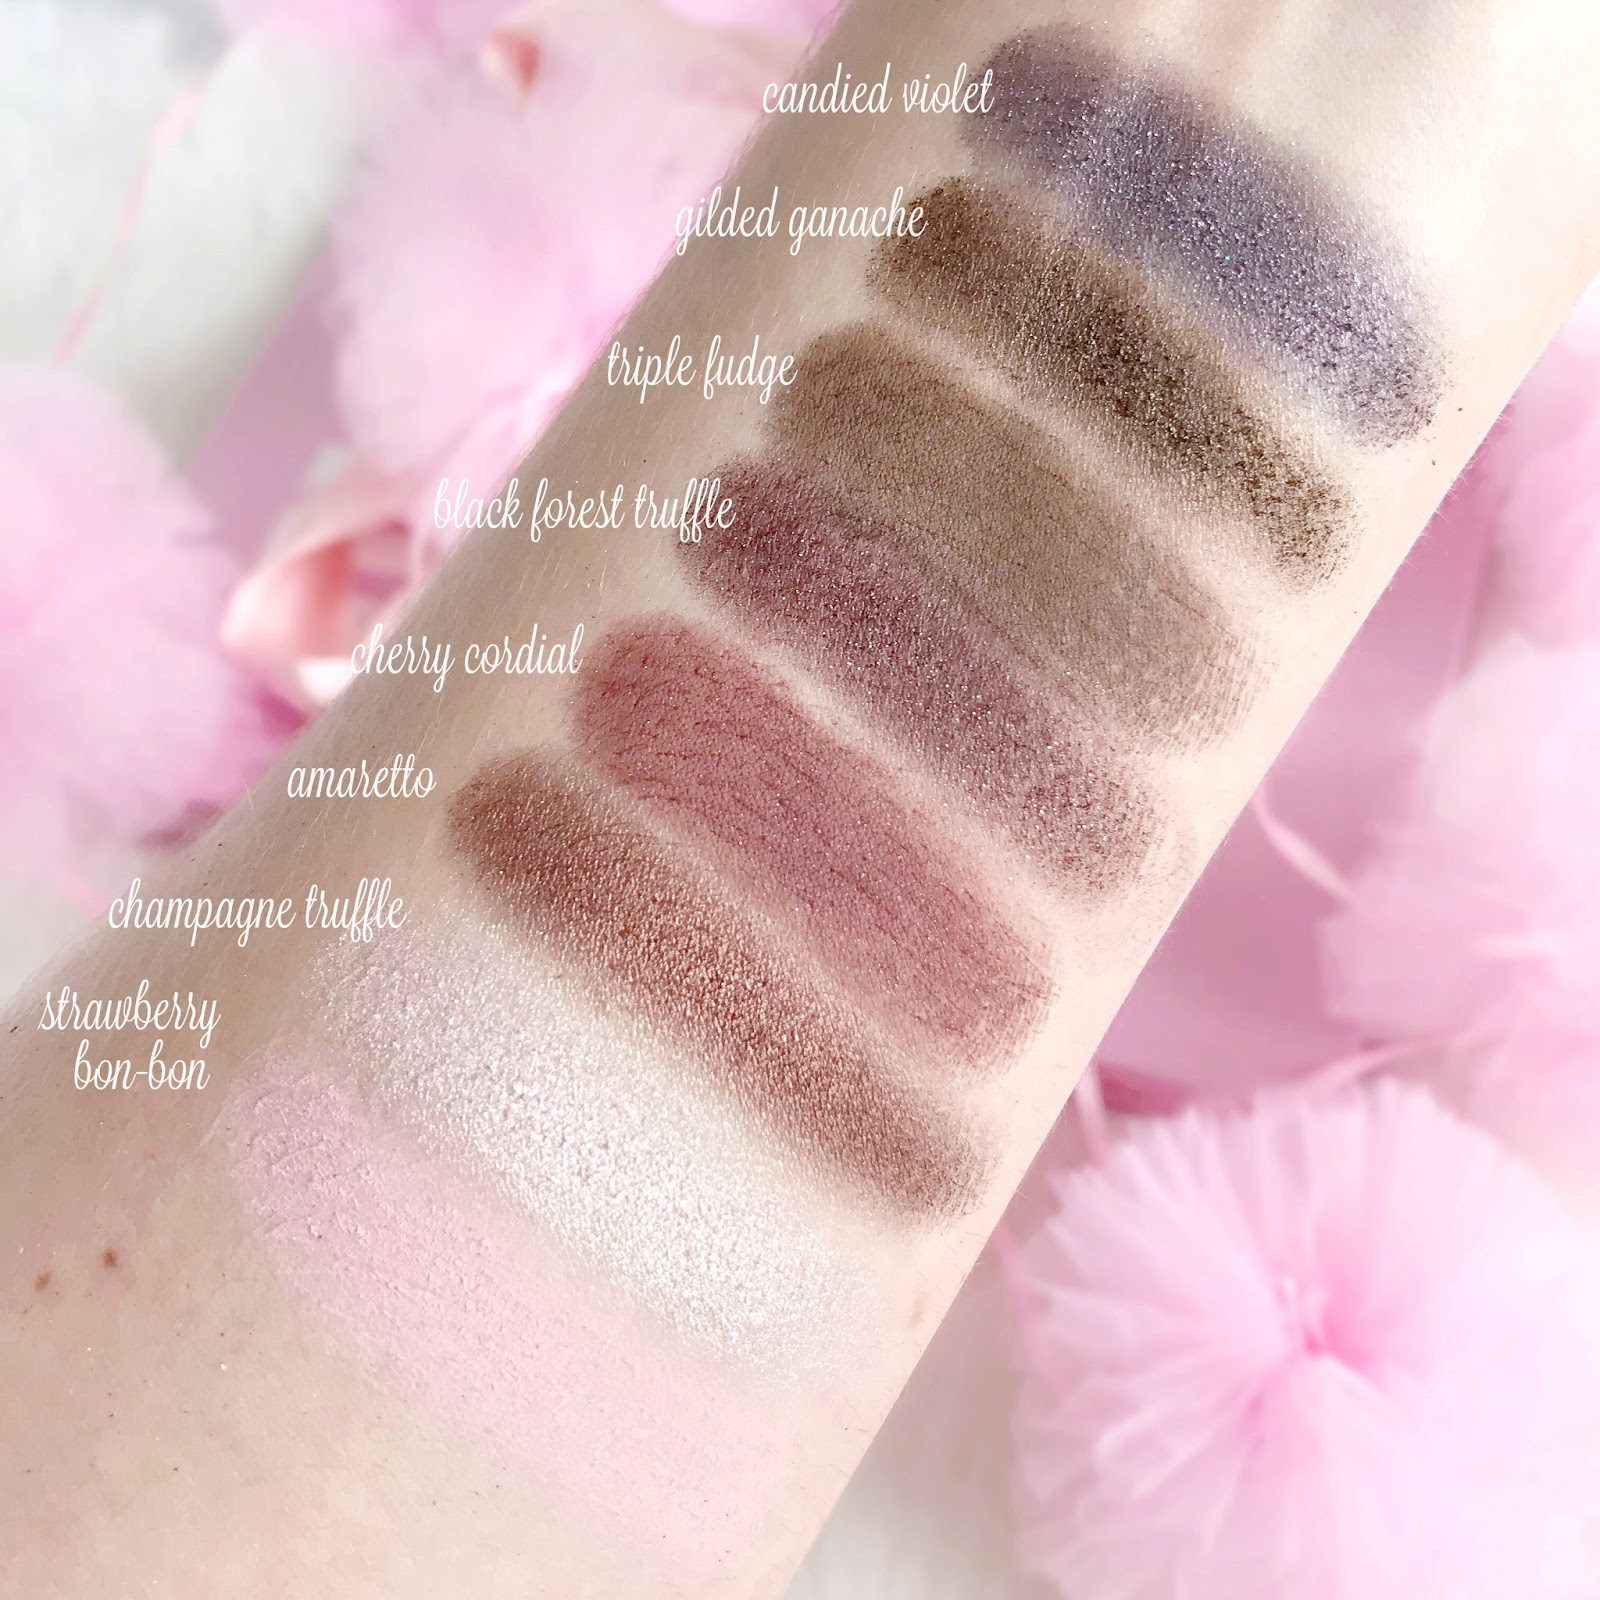 Too Faced Chocolate Bar Palette Swatches   Is It Worth The Hype?